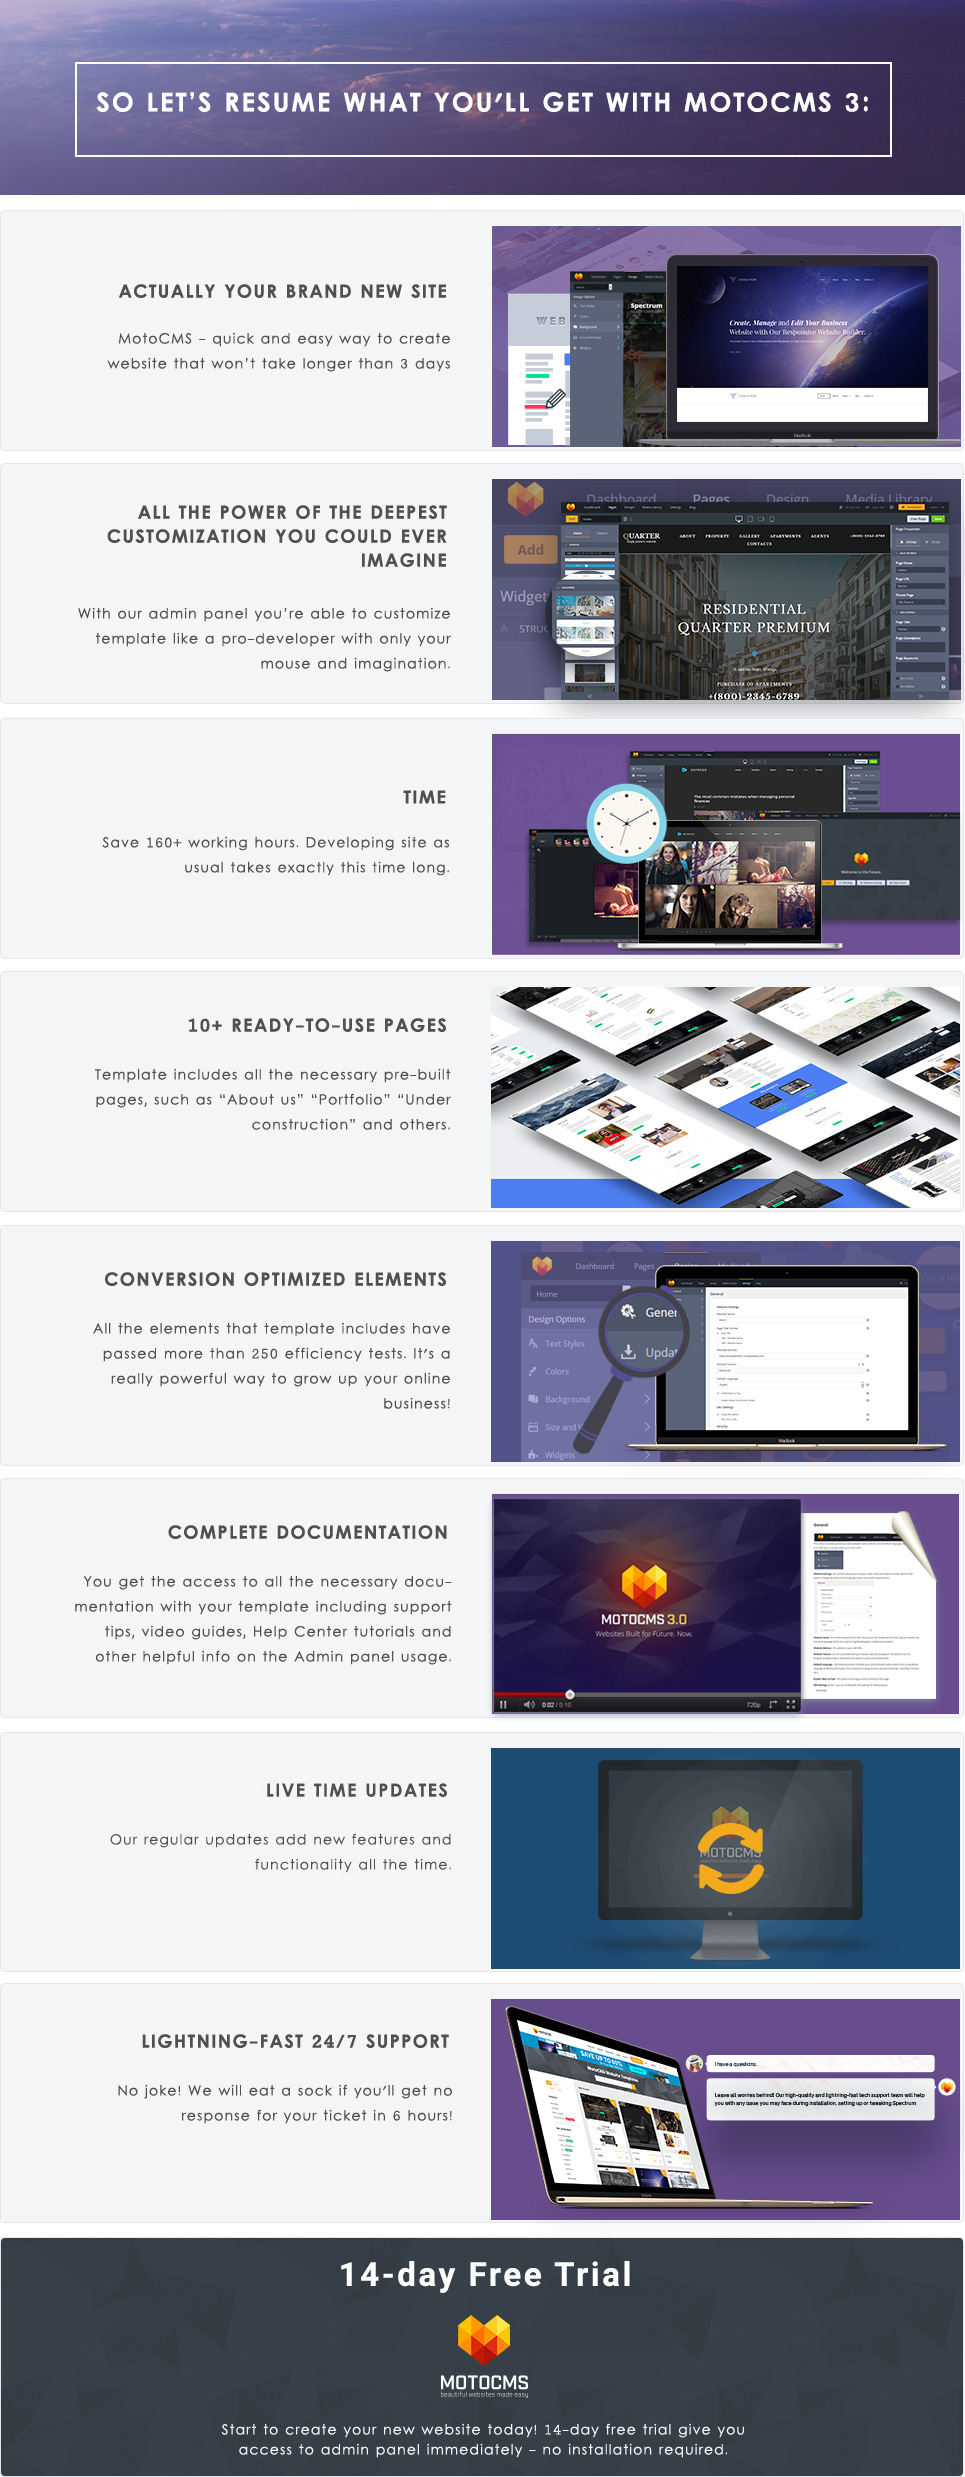 Website Design Template 63700 - press story novel fiction detective science